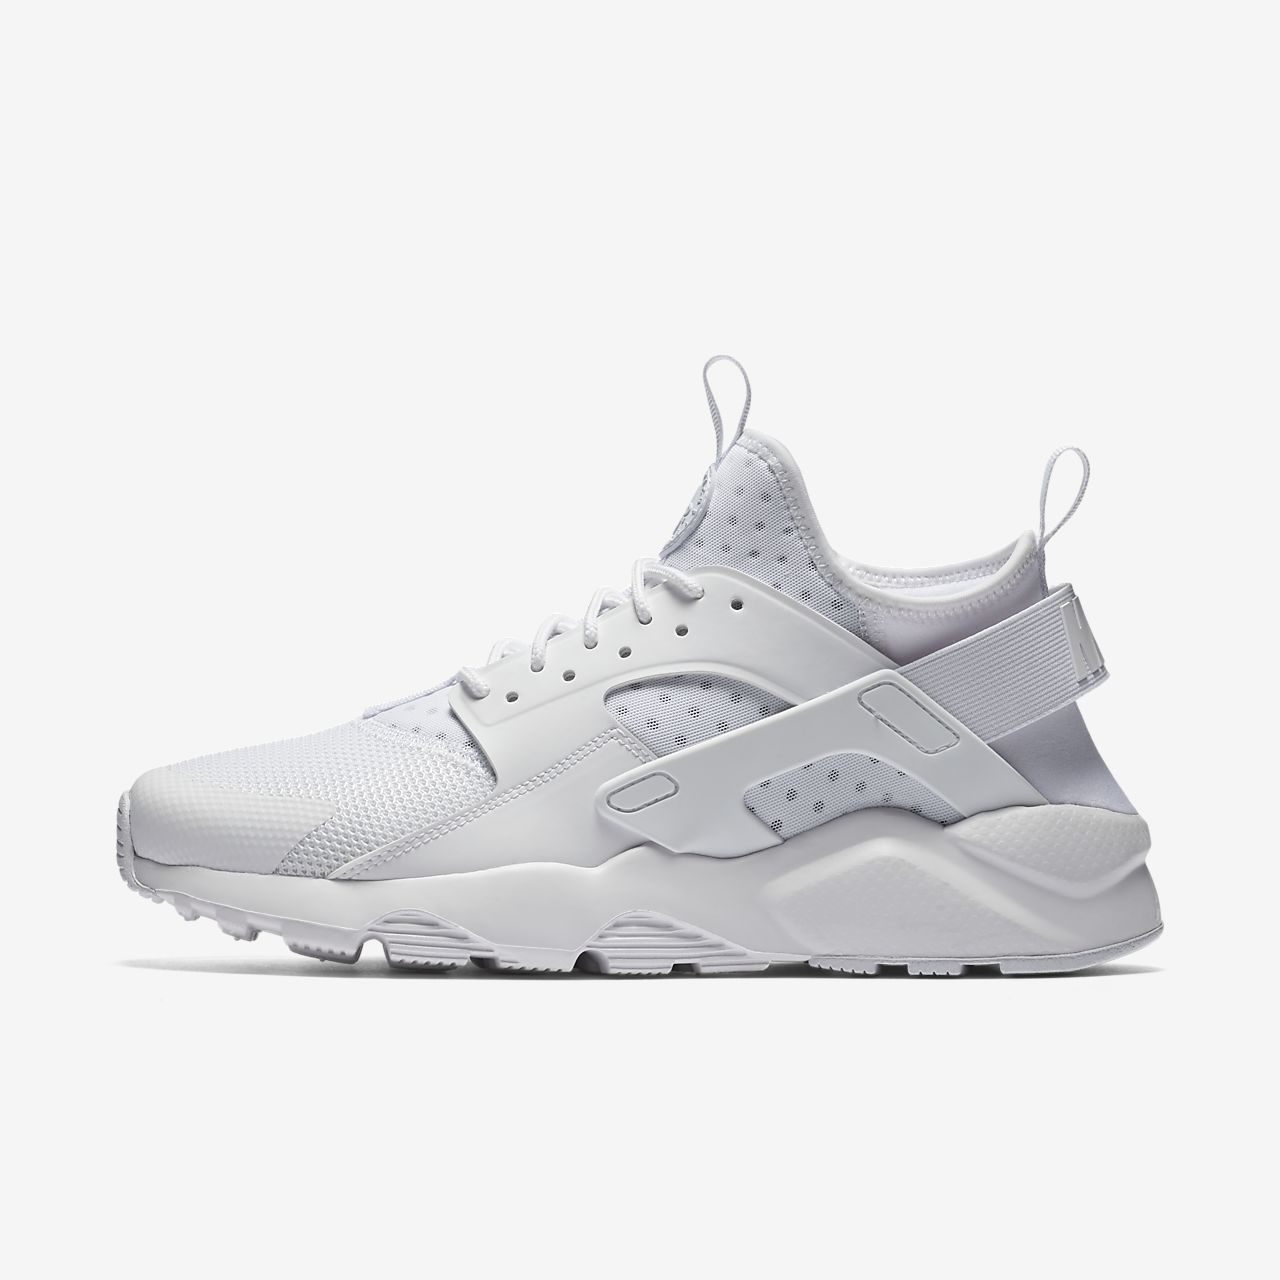 2de89c09c74 Nike Air Huarache Ultra Men s Shoe. Nike.com AU